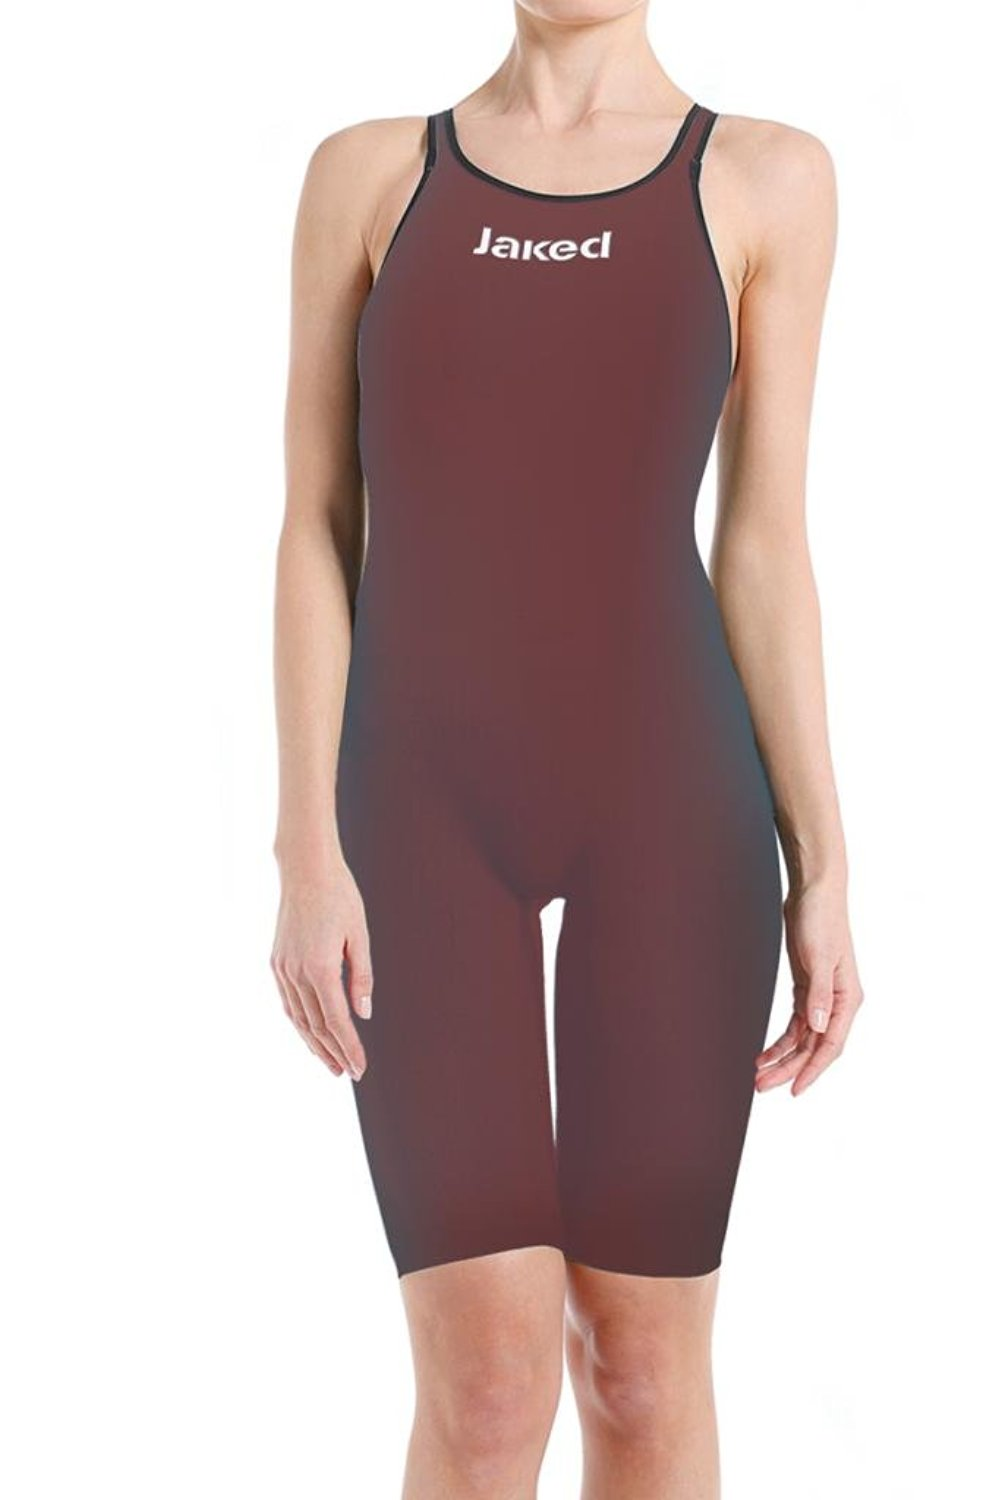 50bde19d51 Get Quotations · Jaked Women's JKATANA OPEN BACK COMPETITION TECHNICAL  SWIMSUIT